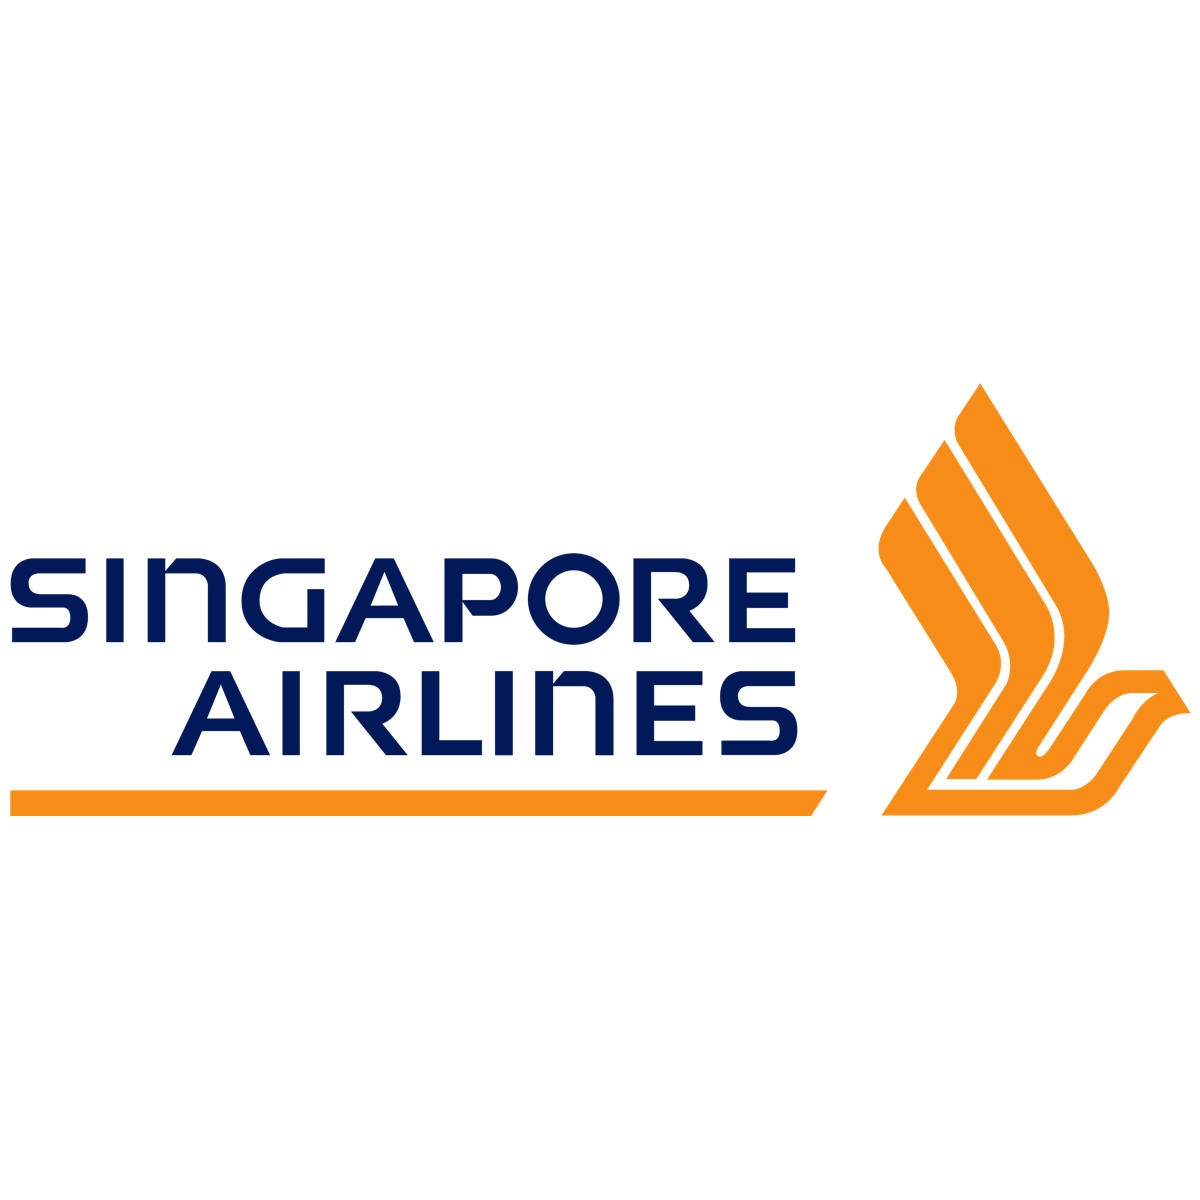 Singapore Airlines - CIMB Research 2018-02-21: Higher Oil Prices Improve SIA's Competitive Position